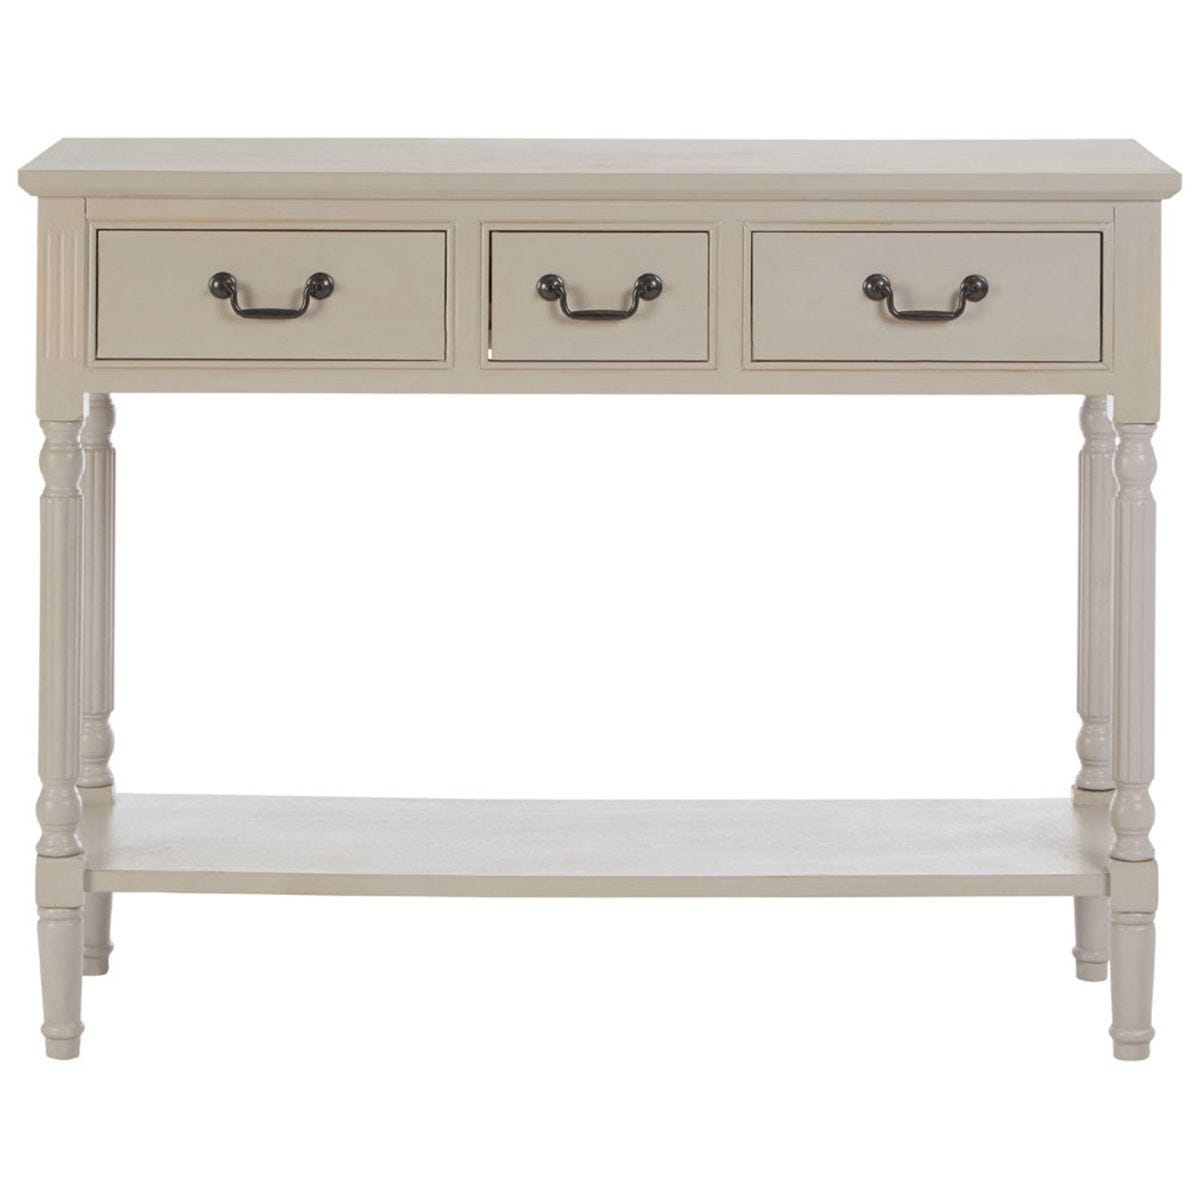 Heritage Console Table Rectangular / 3 Drawers Vintage Grey